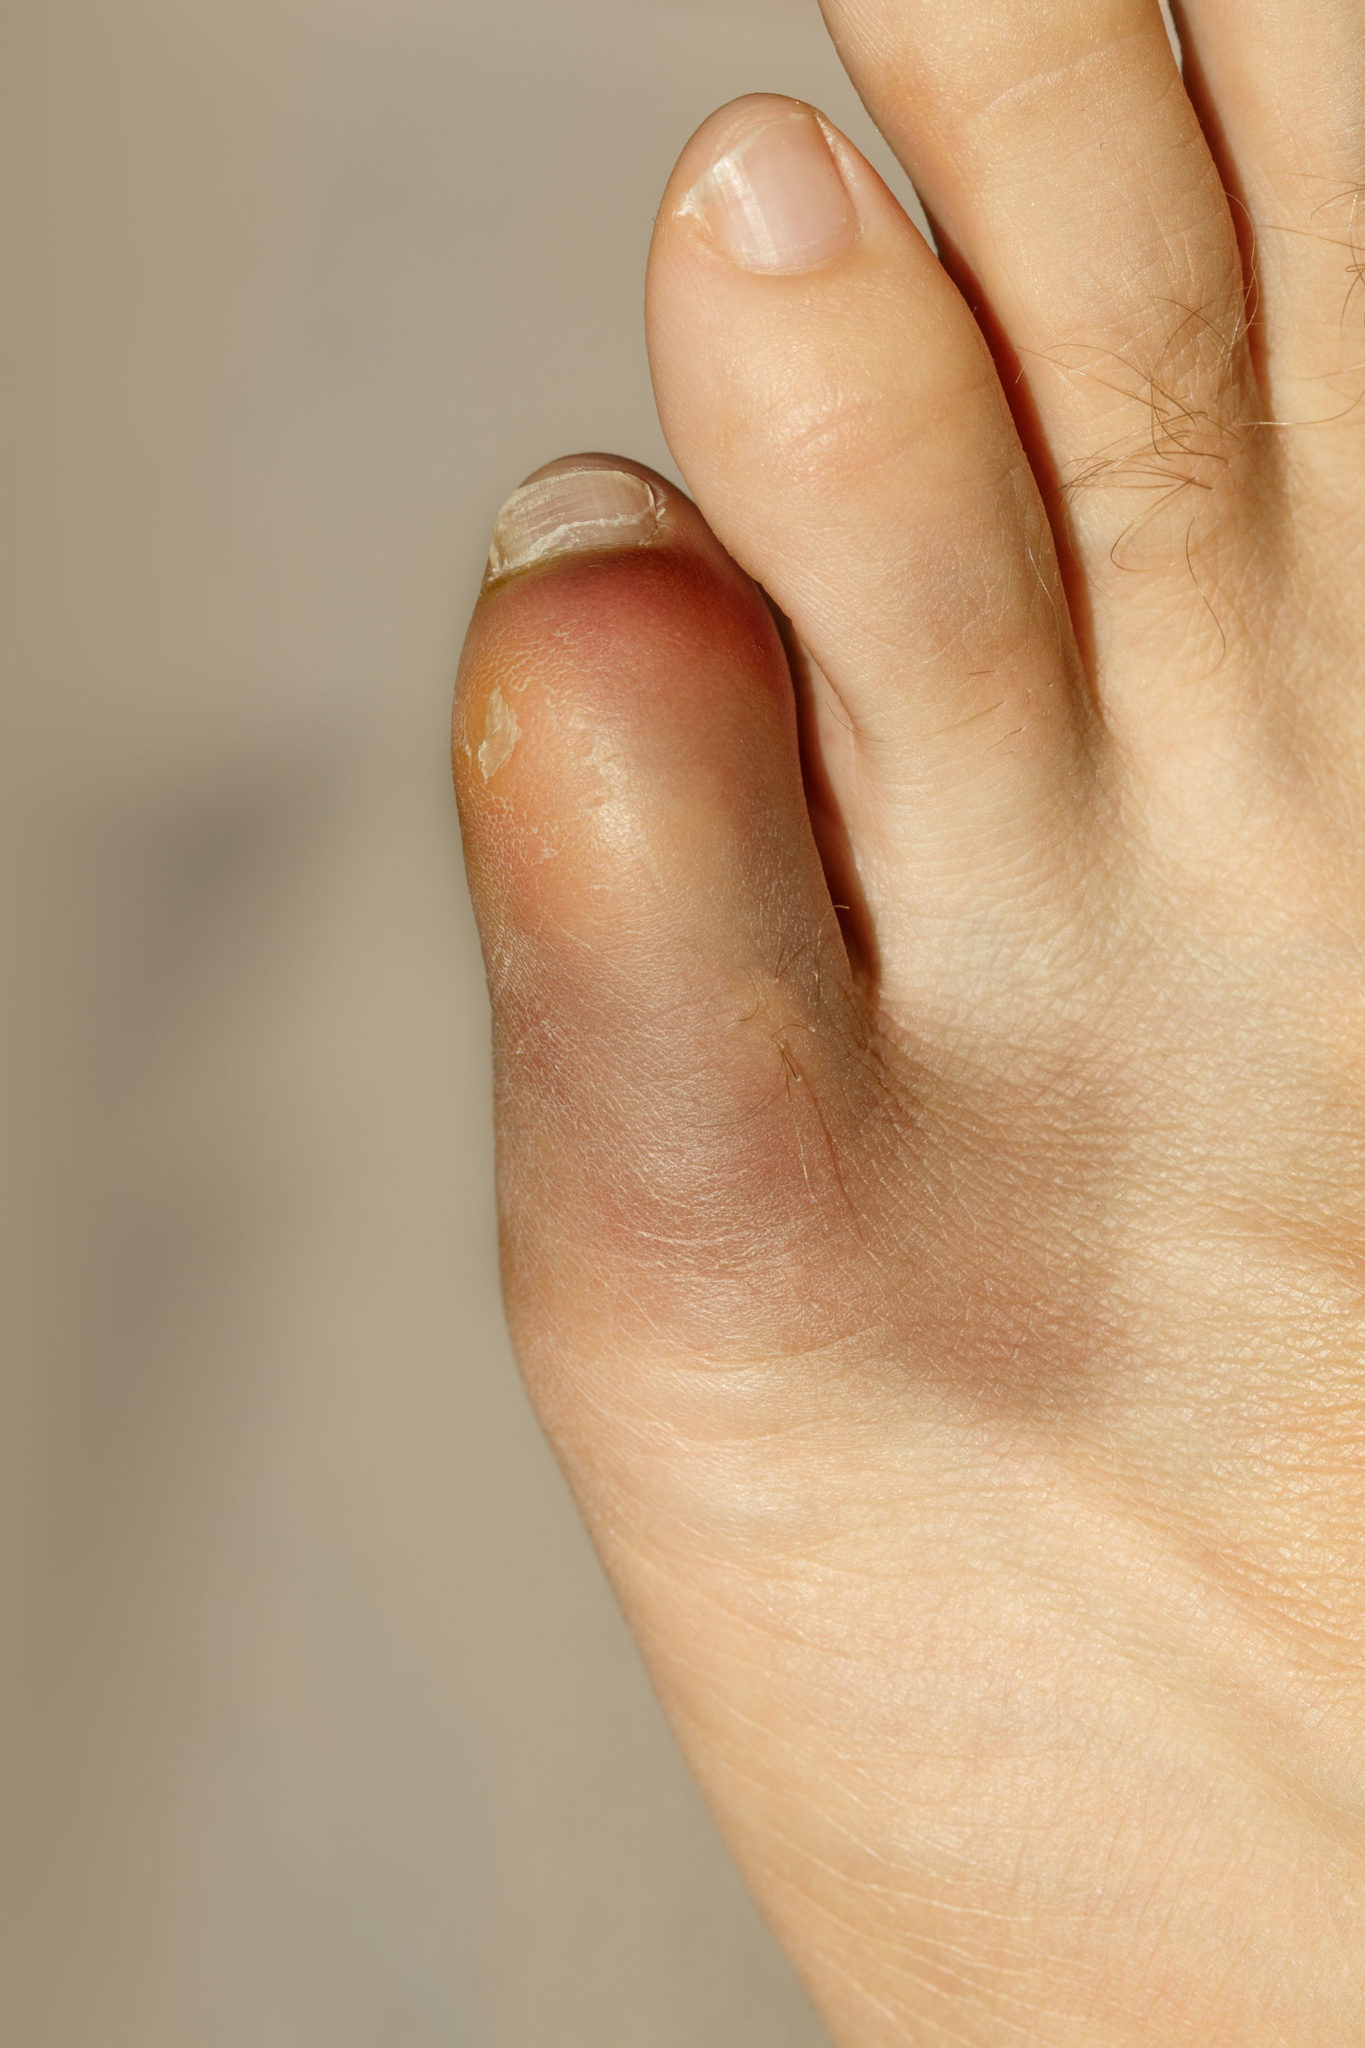 How to help heal a broken big toe quickly do